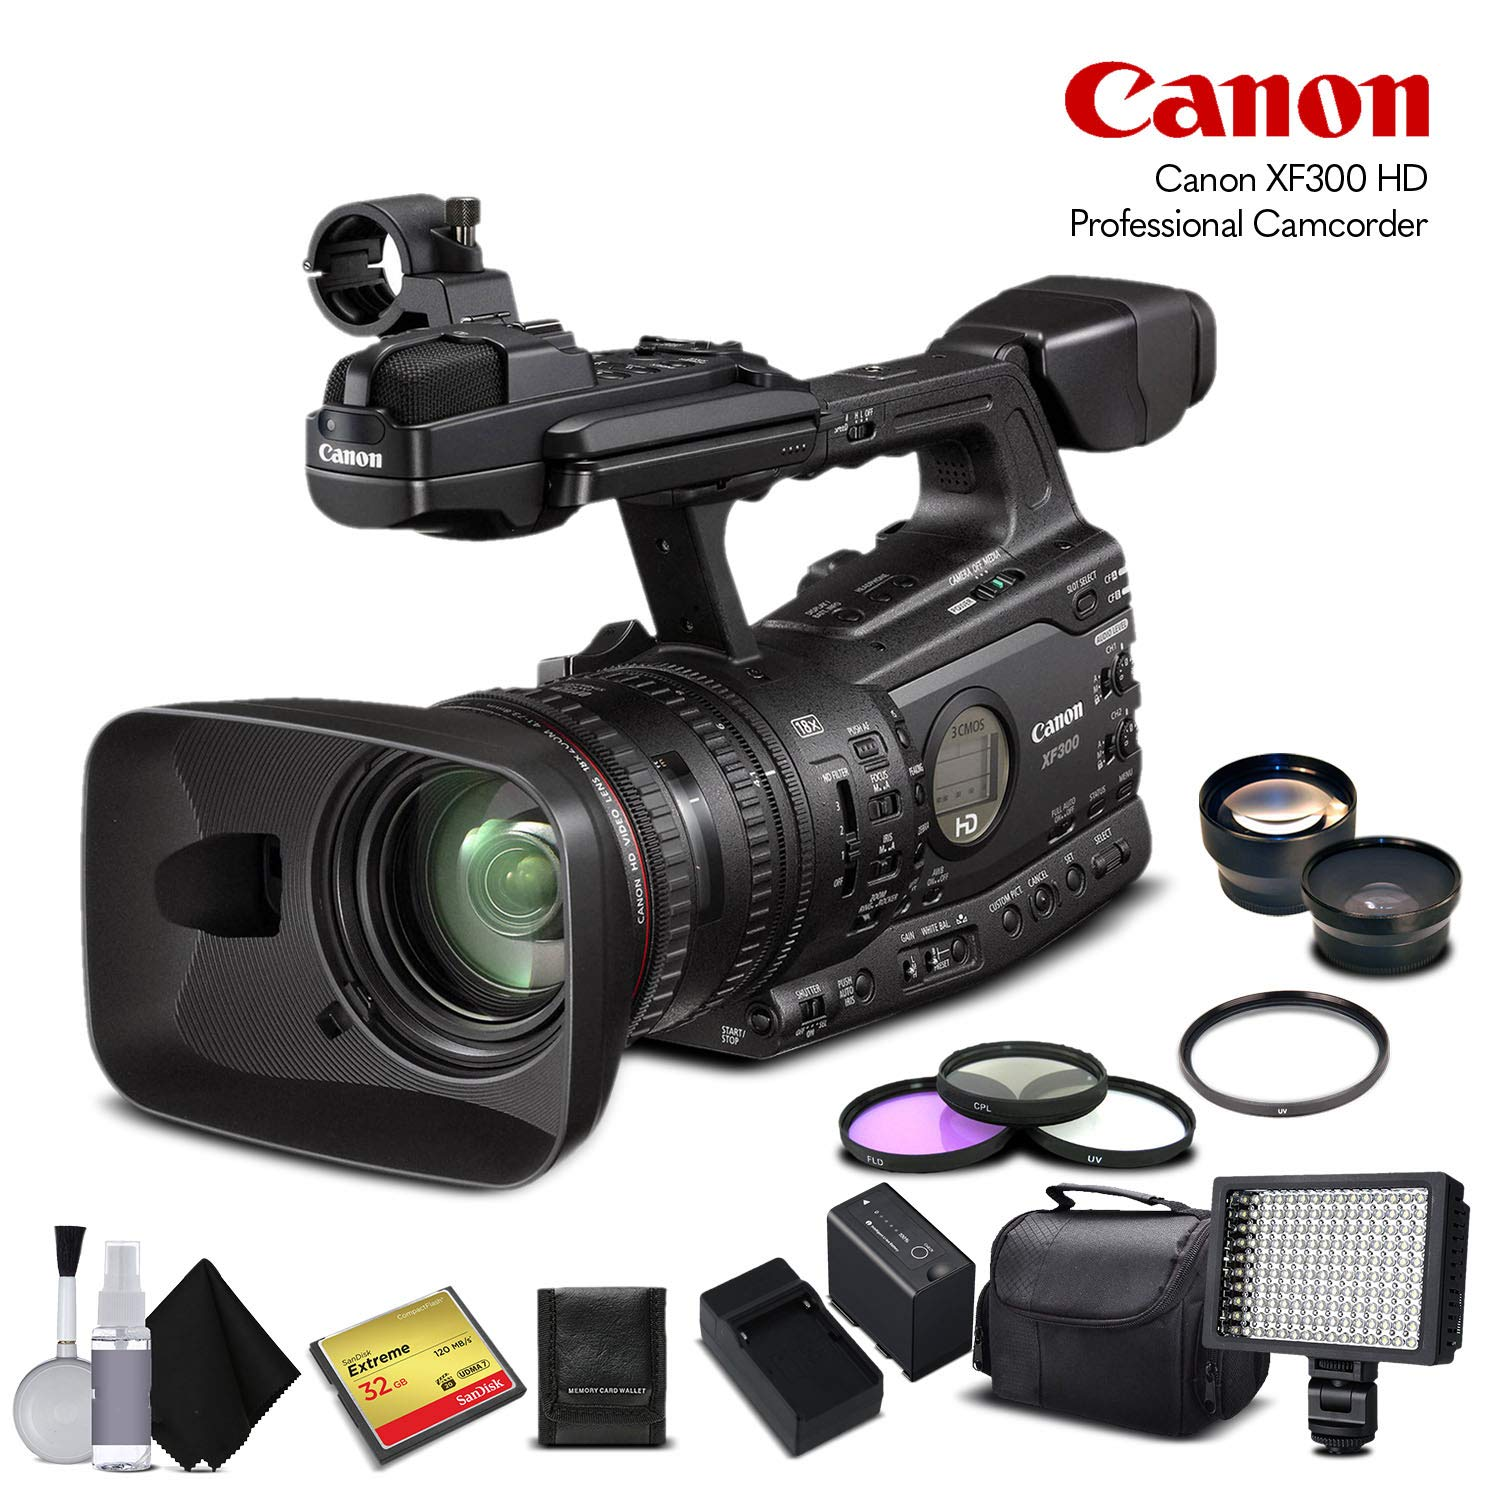 CANON XF300 CAMCORDER DRIVER WINDOWS XP